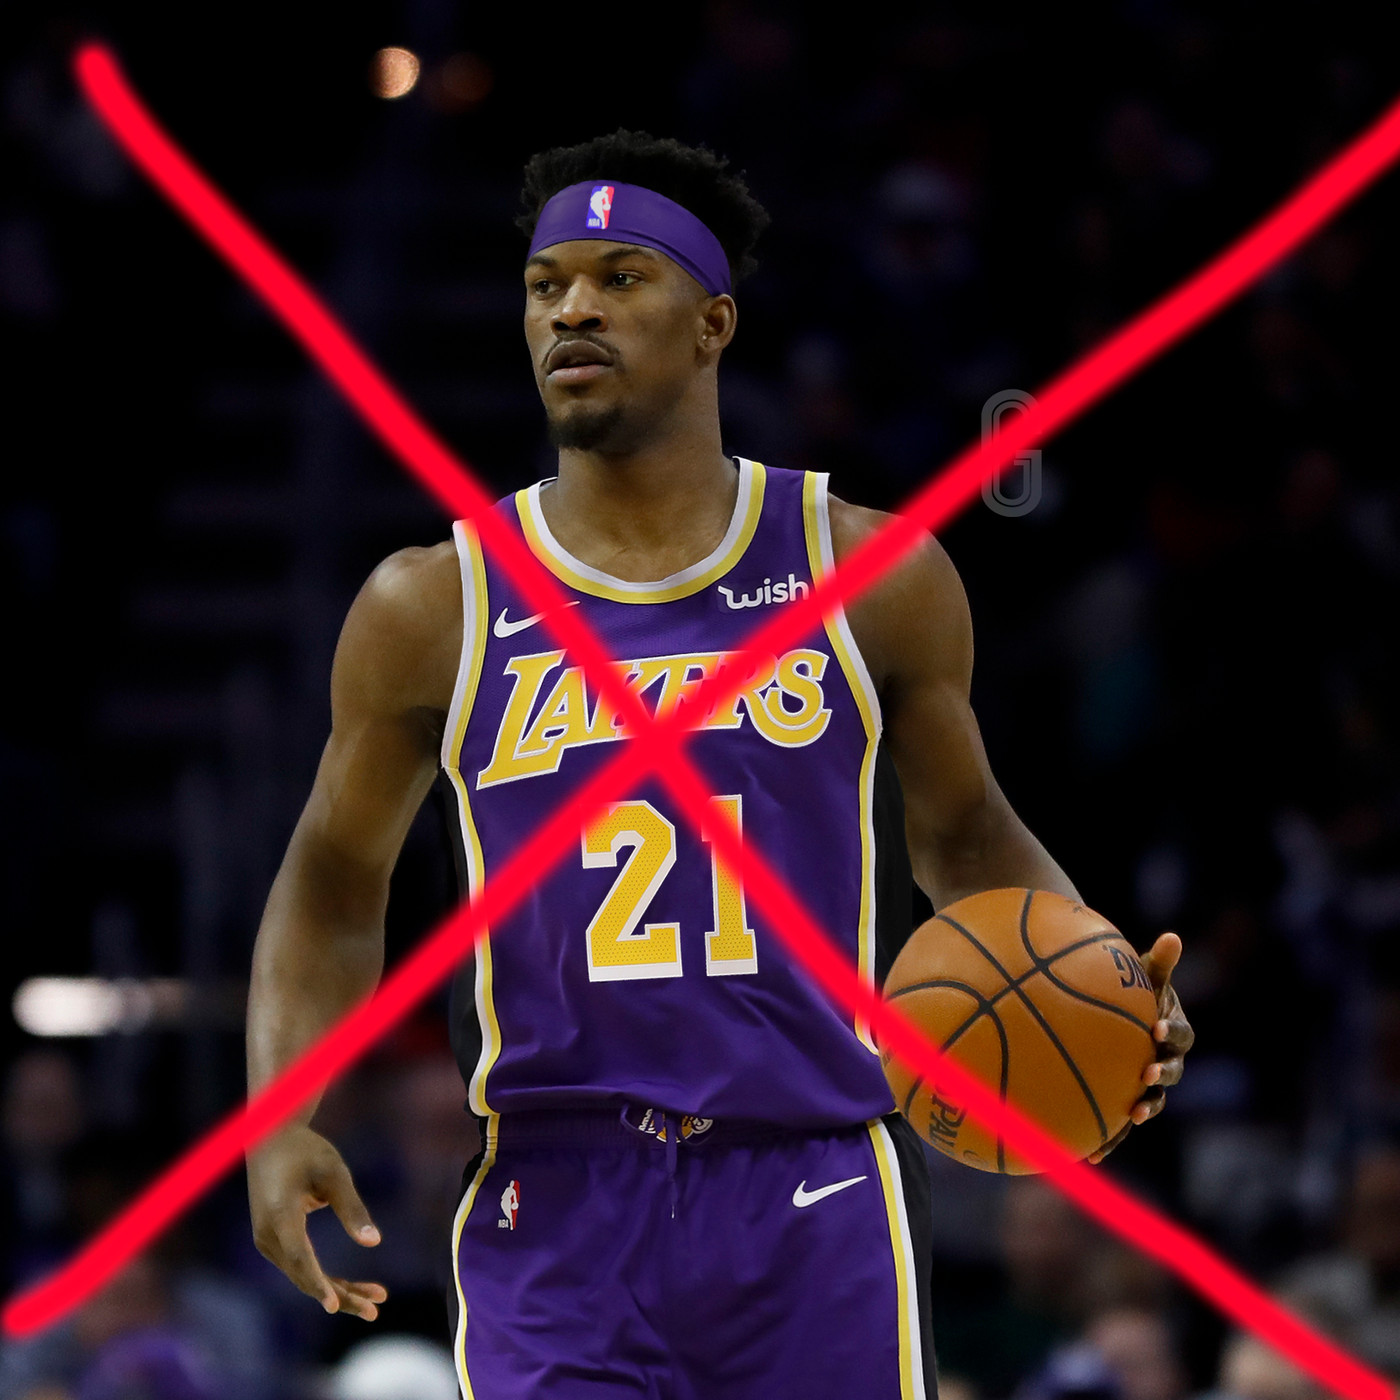 Nba Finals Jimmy Butler Never Considered Joining Lakers In Free Agency Silver Screen And Roll